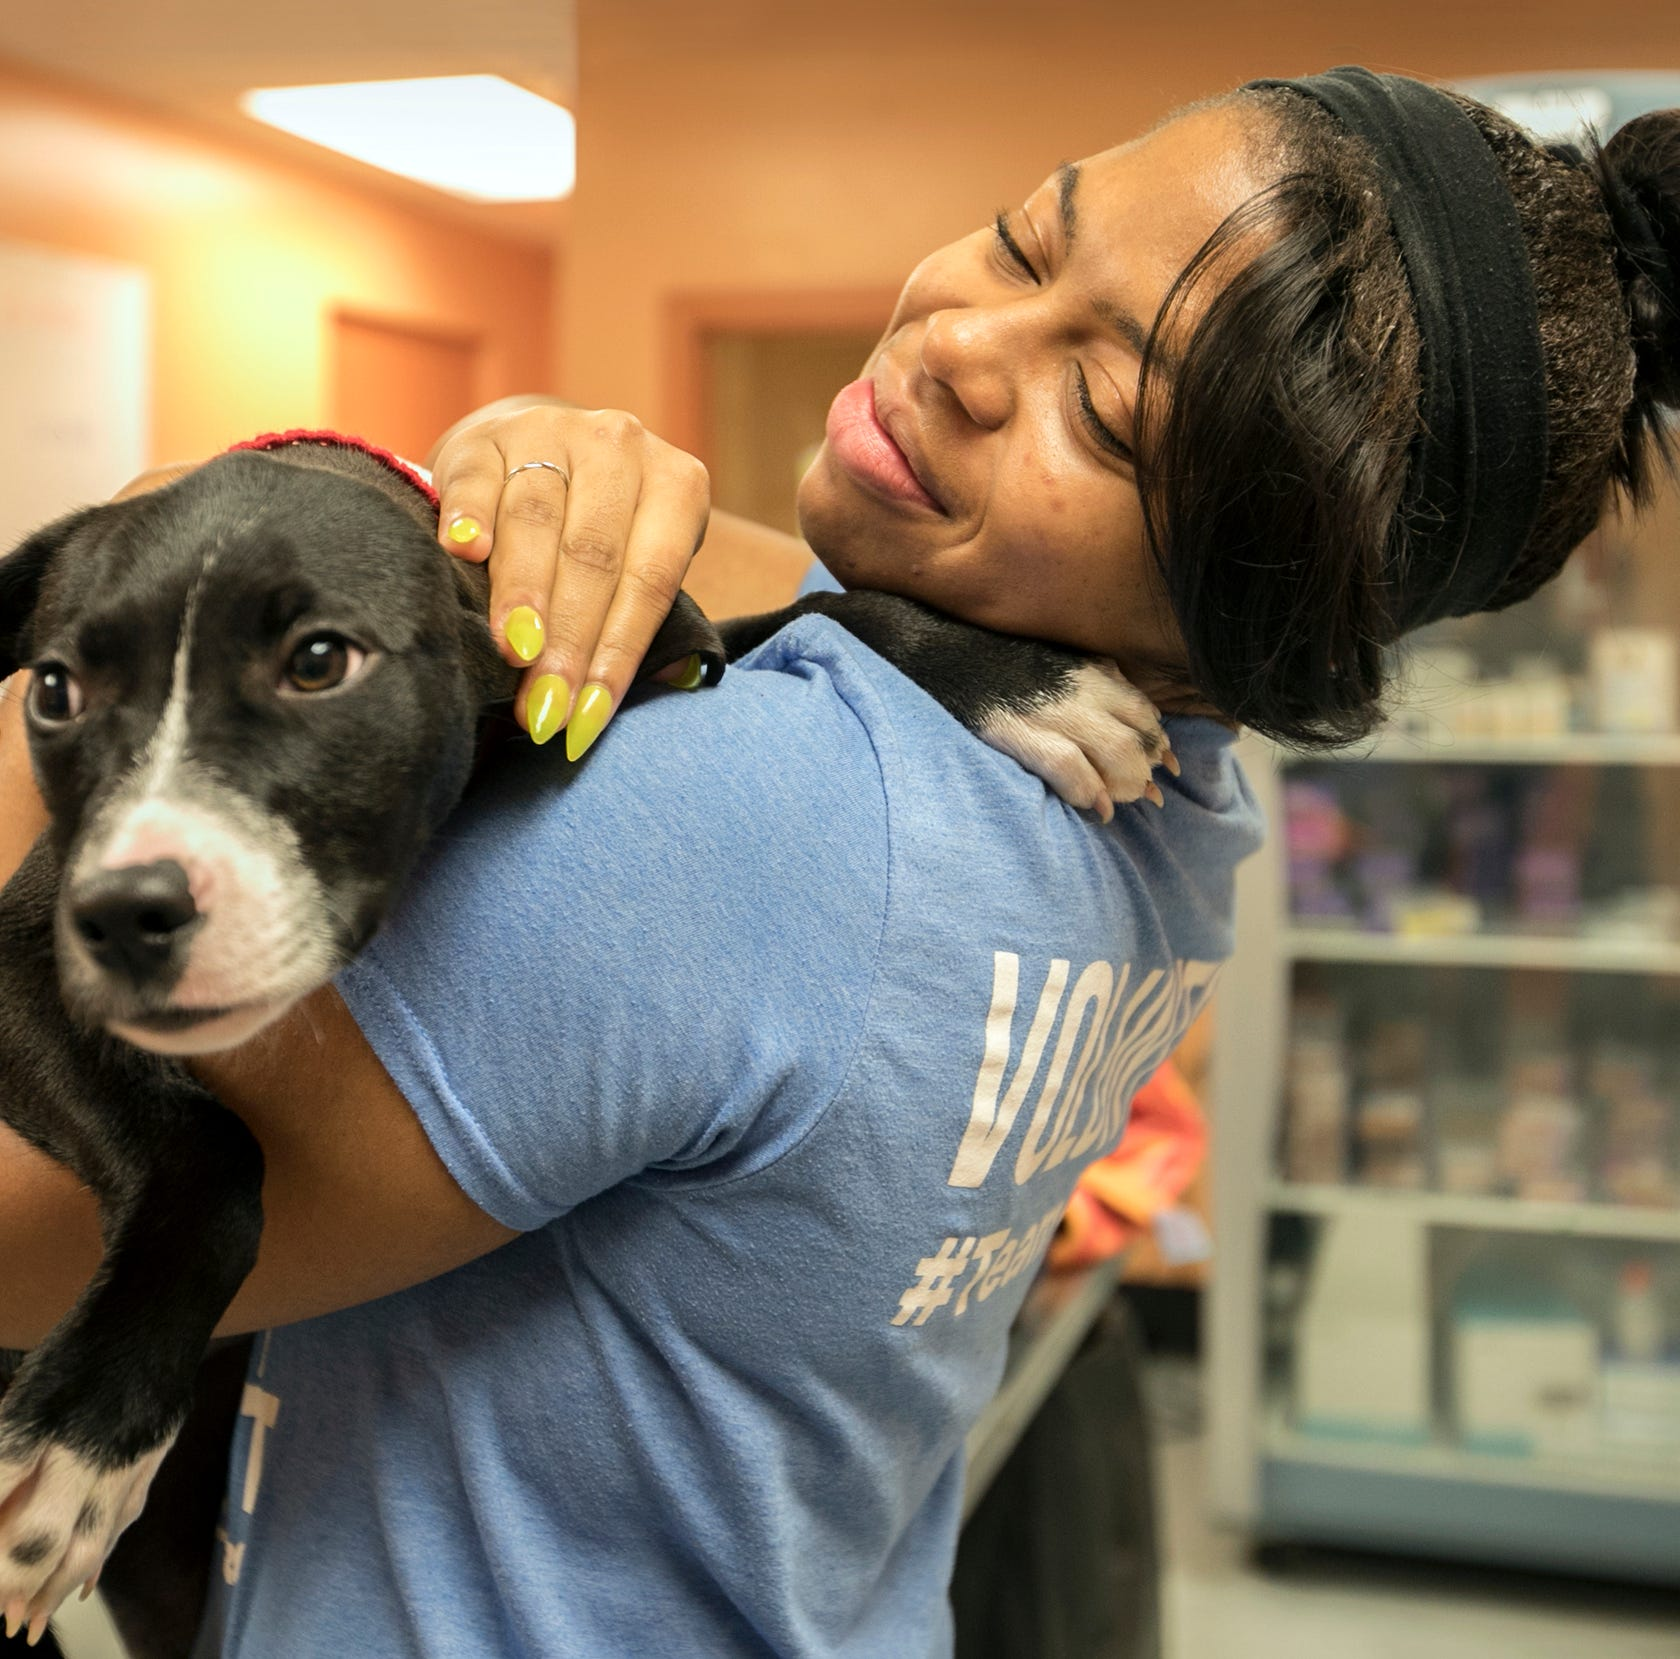 Program pairs homeless youth and shelter dogs, and everybody benefits